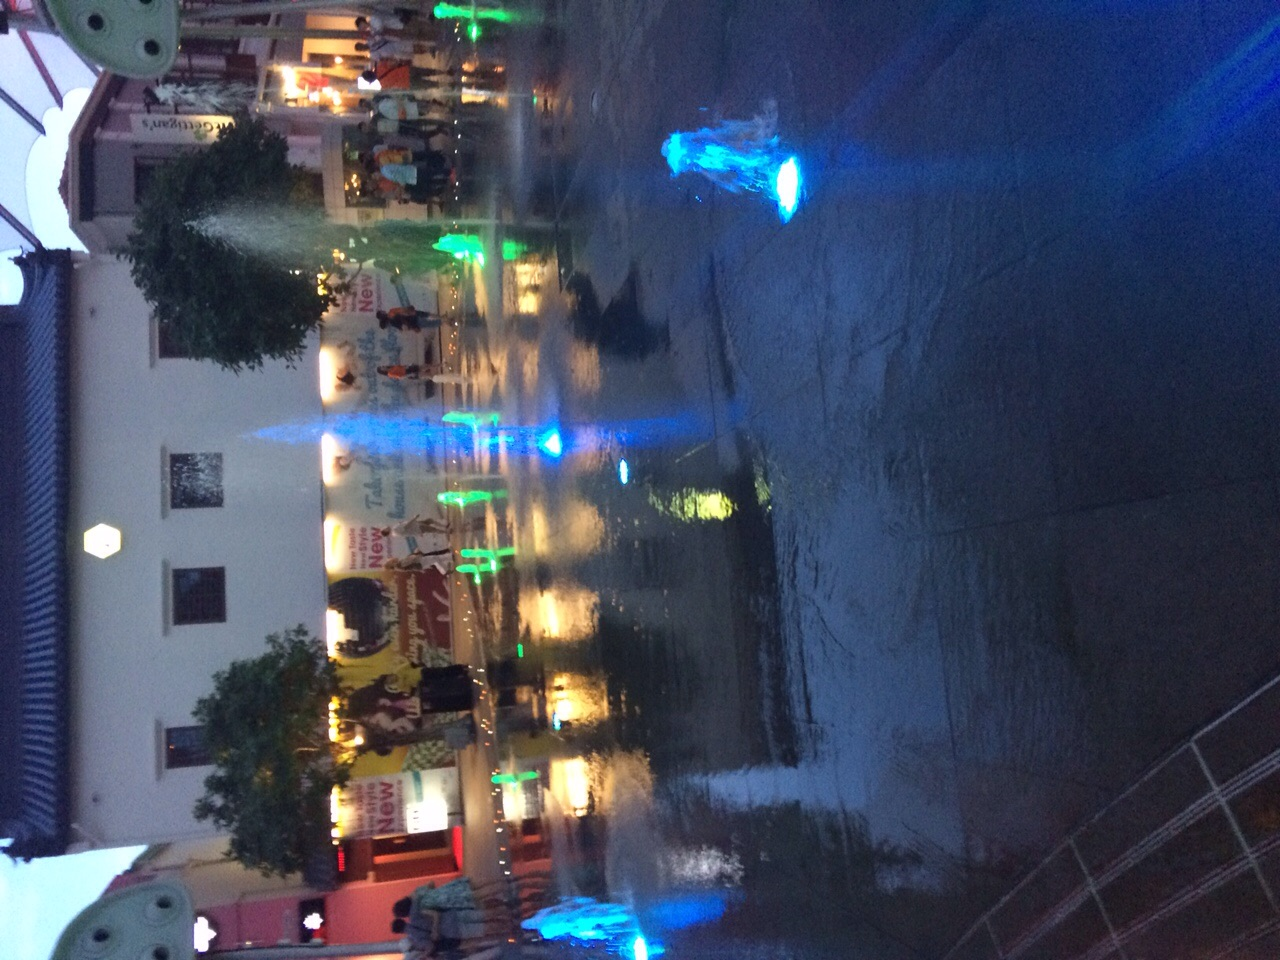 The fountains at Clarke Quay reminded me of the playgrounds at home